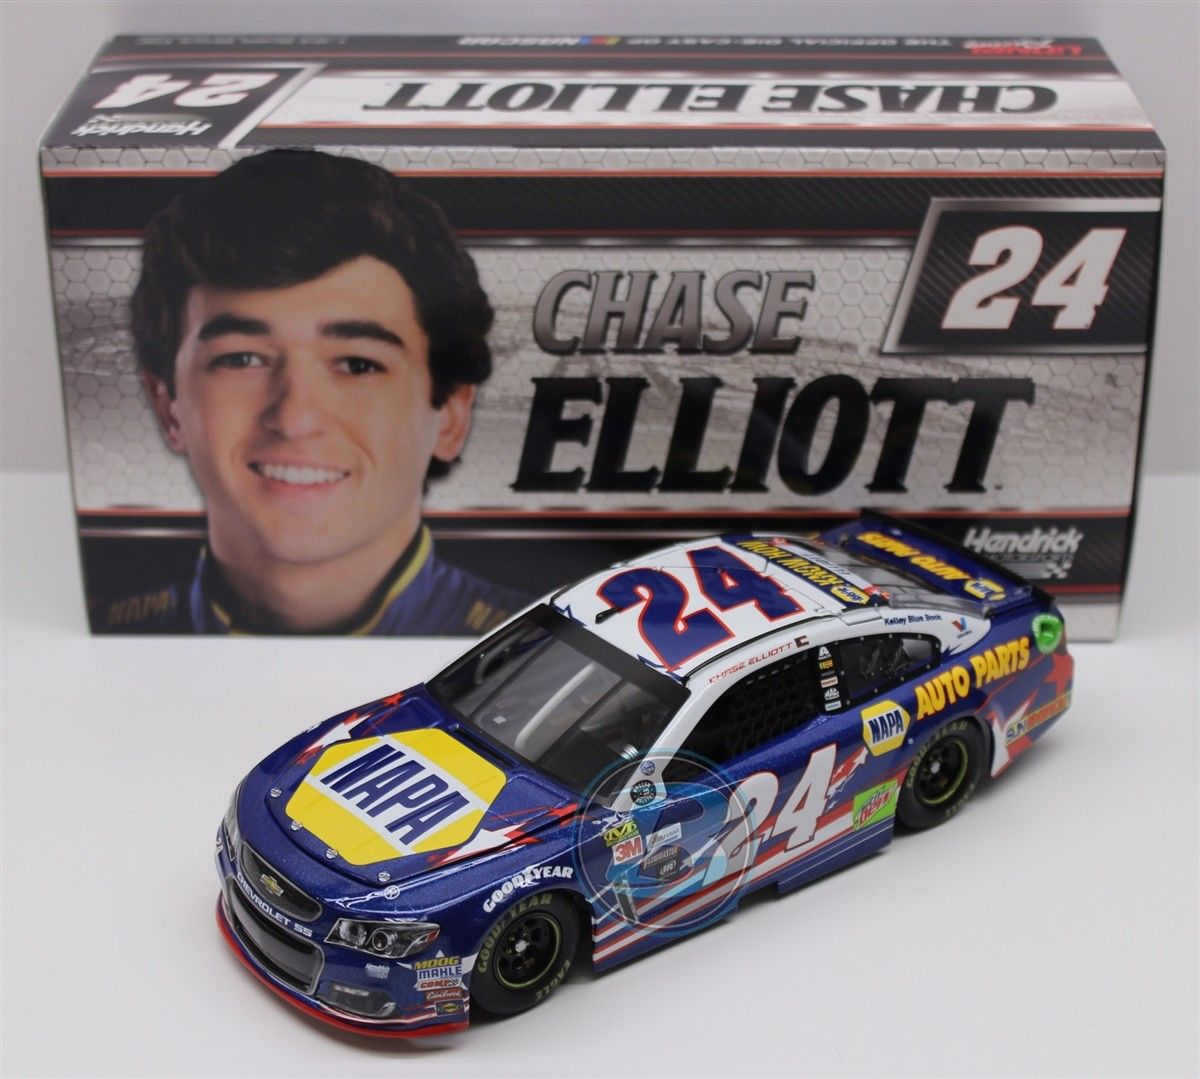 NASCAR 2017 CHASE ELLIOTT   24 patriotique NAPA Auto Parts 1 24 voiture